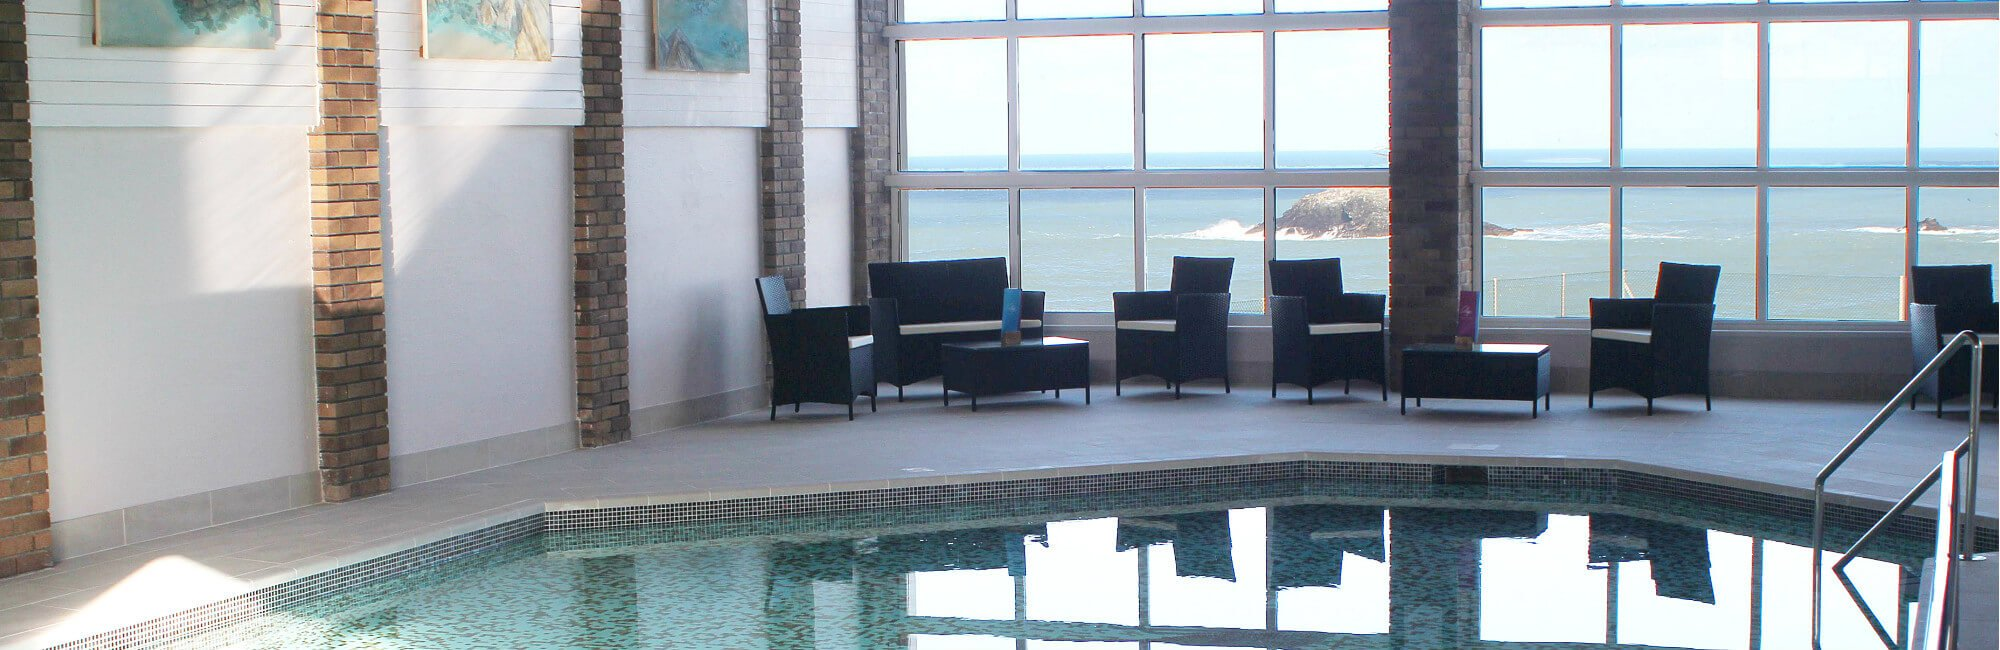 Crantock Bay Spa Pool - Holiday Apartments